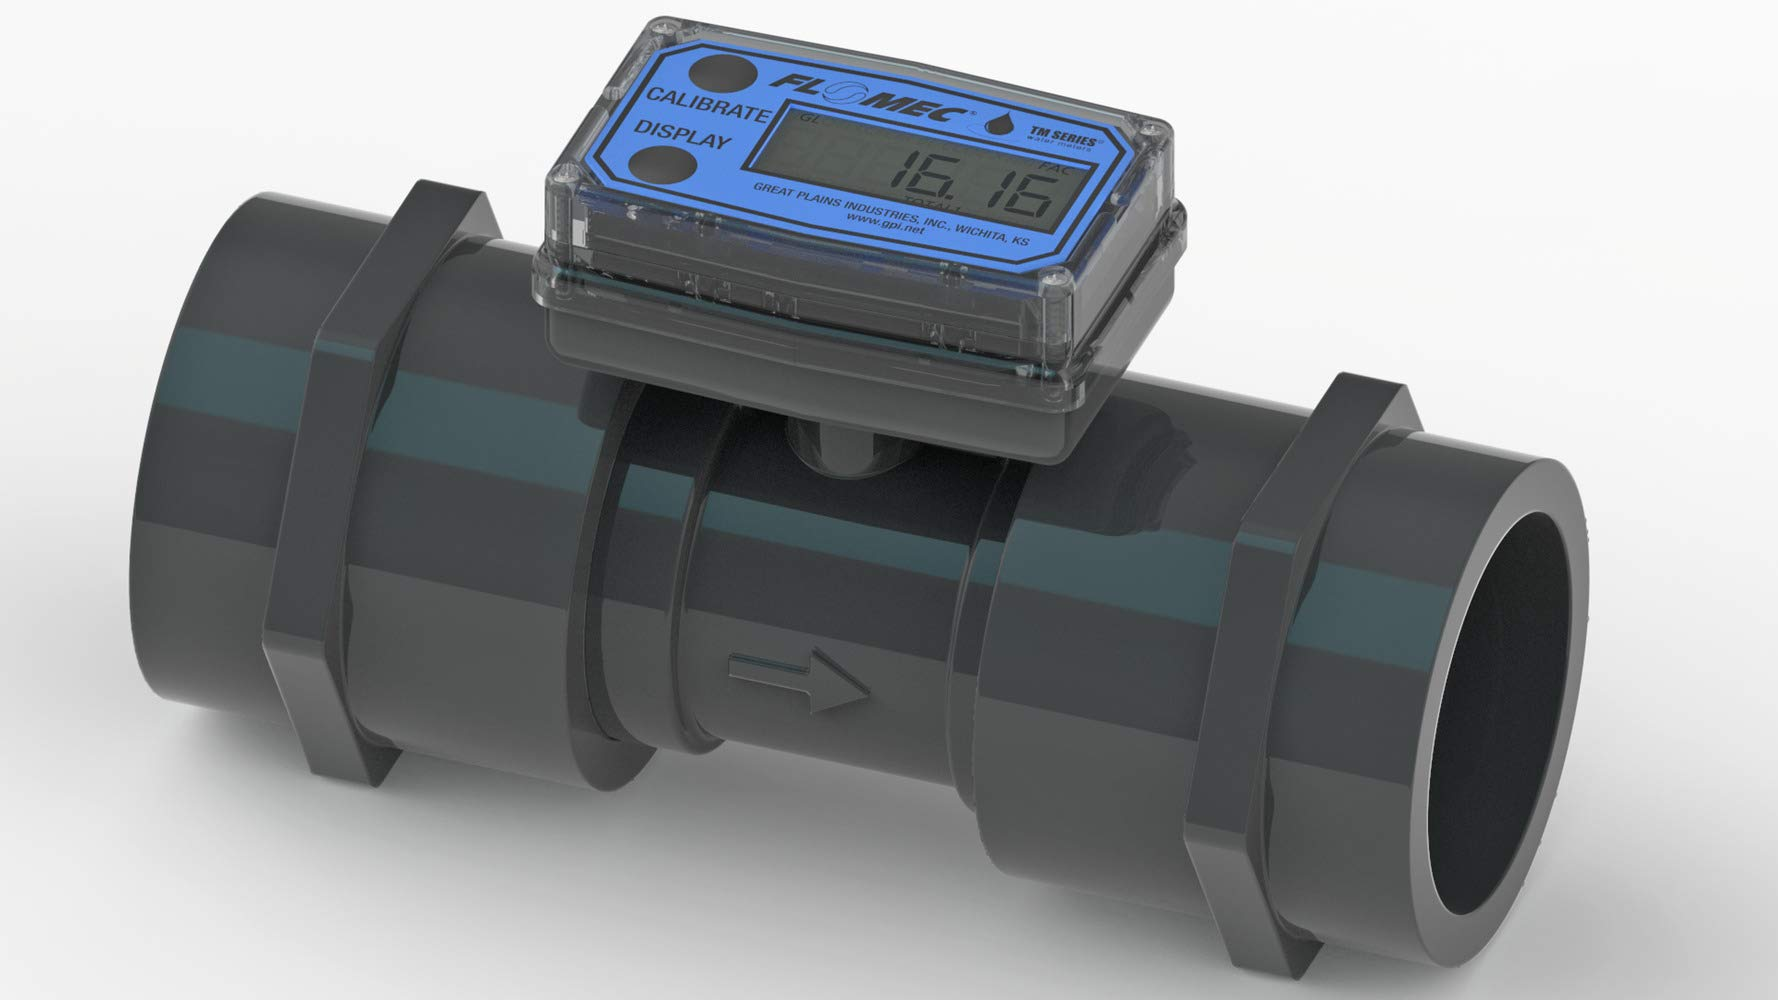 FLOMEC TM200-N, 2 inch Turbine Meter, PVC, Battery Operated Display with Rate and 2 Total registers, 3% Accuracy, 20 to 200 GPM Flow Range